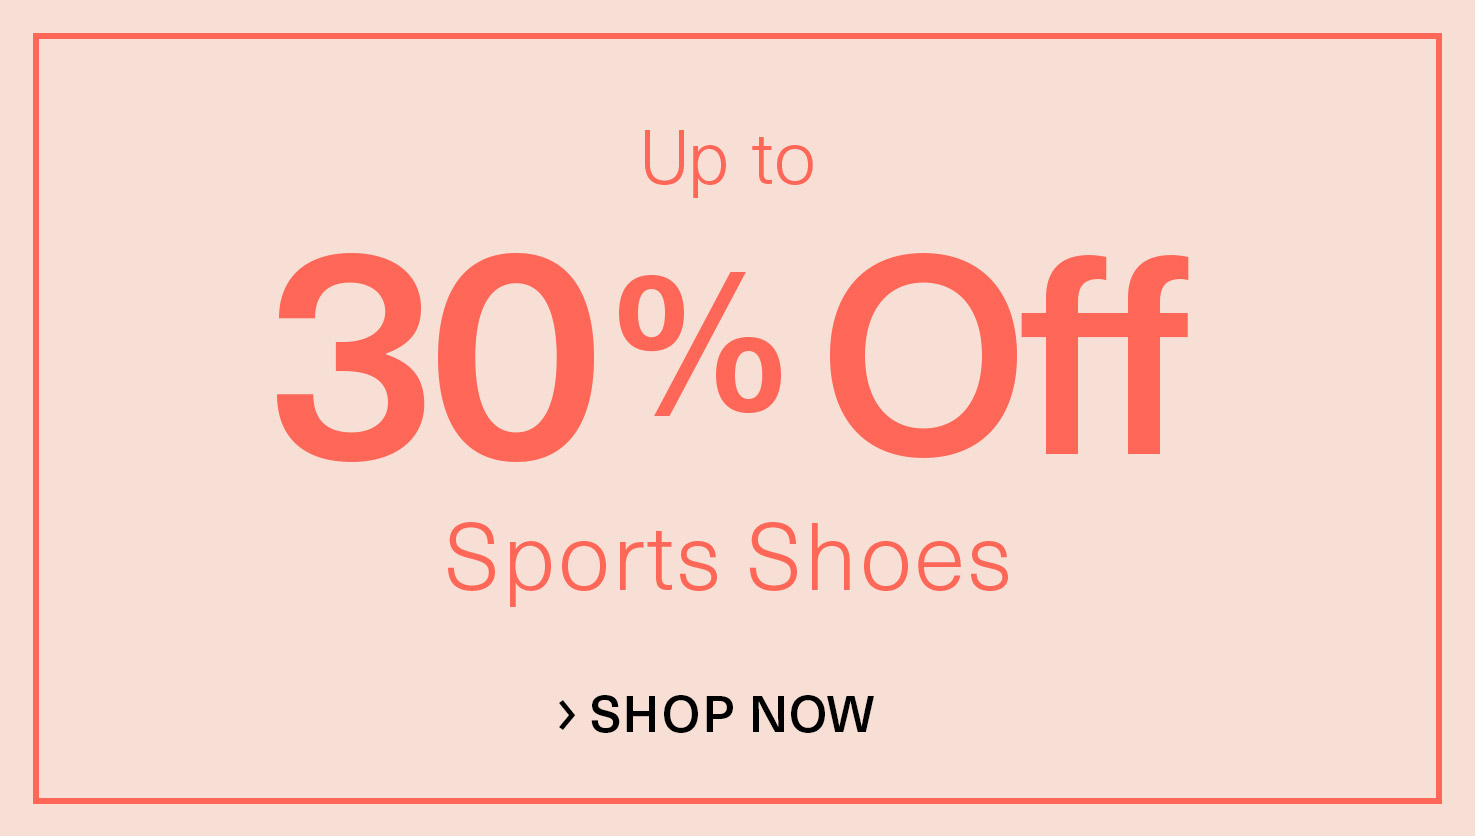 Up to 30% off Sports Shoes